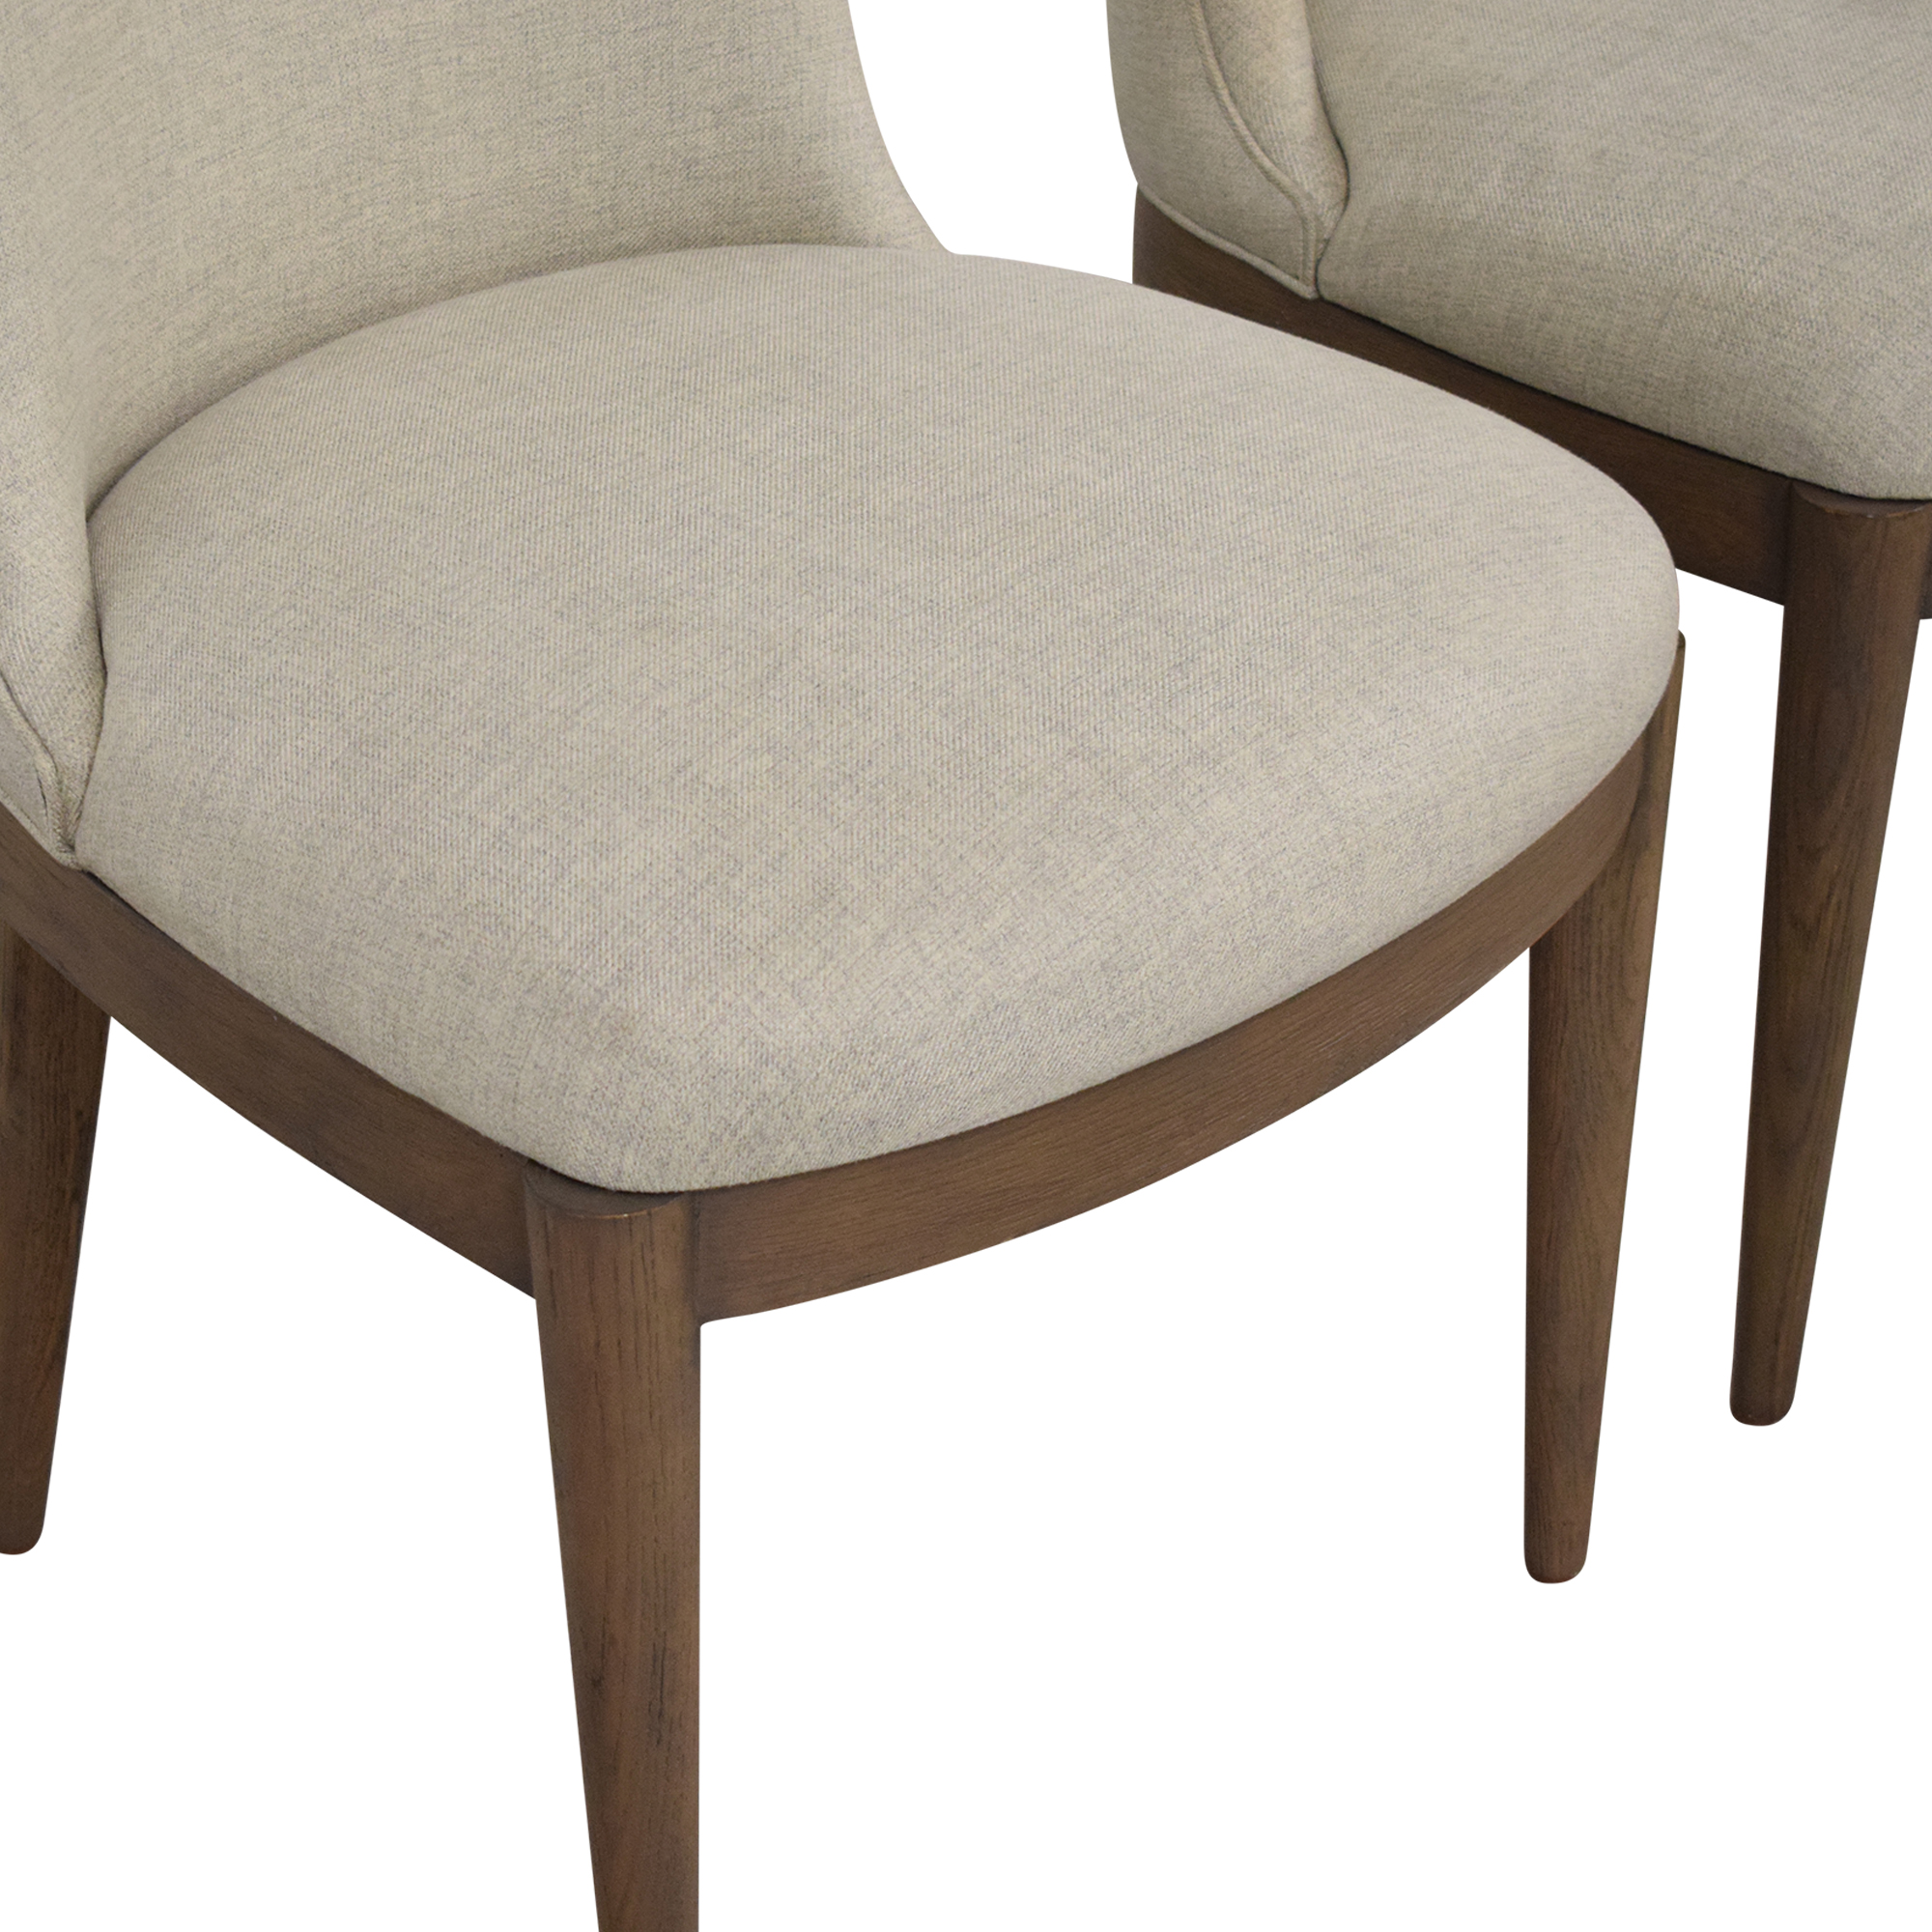 Caracole Caracole Metro Dining Chairs coupon